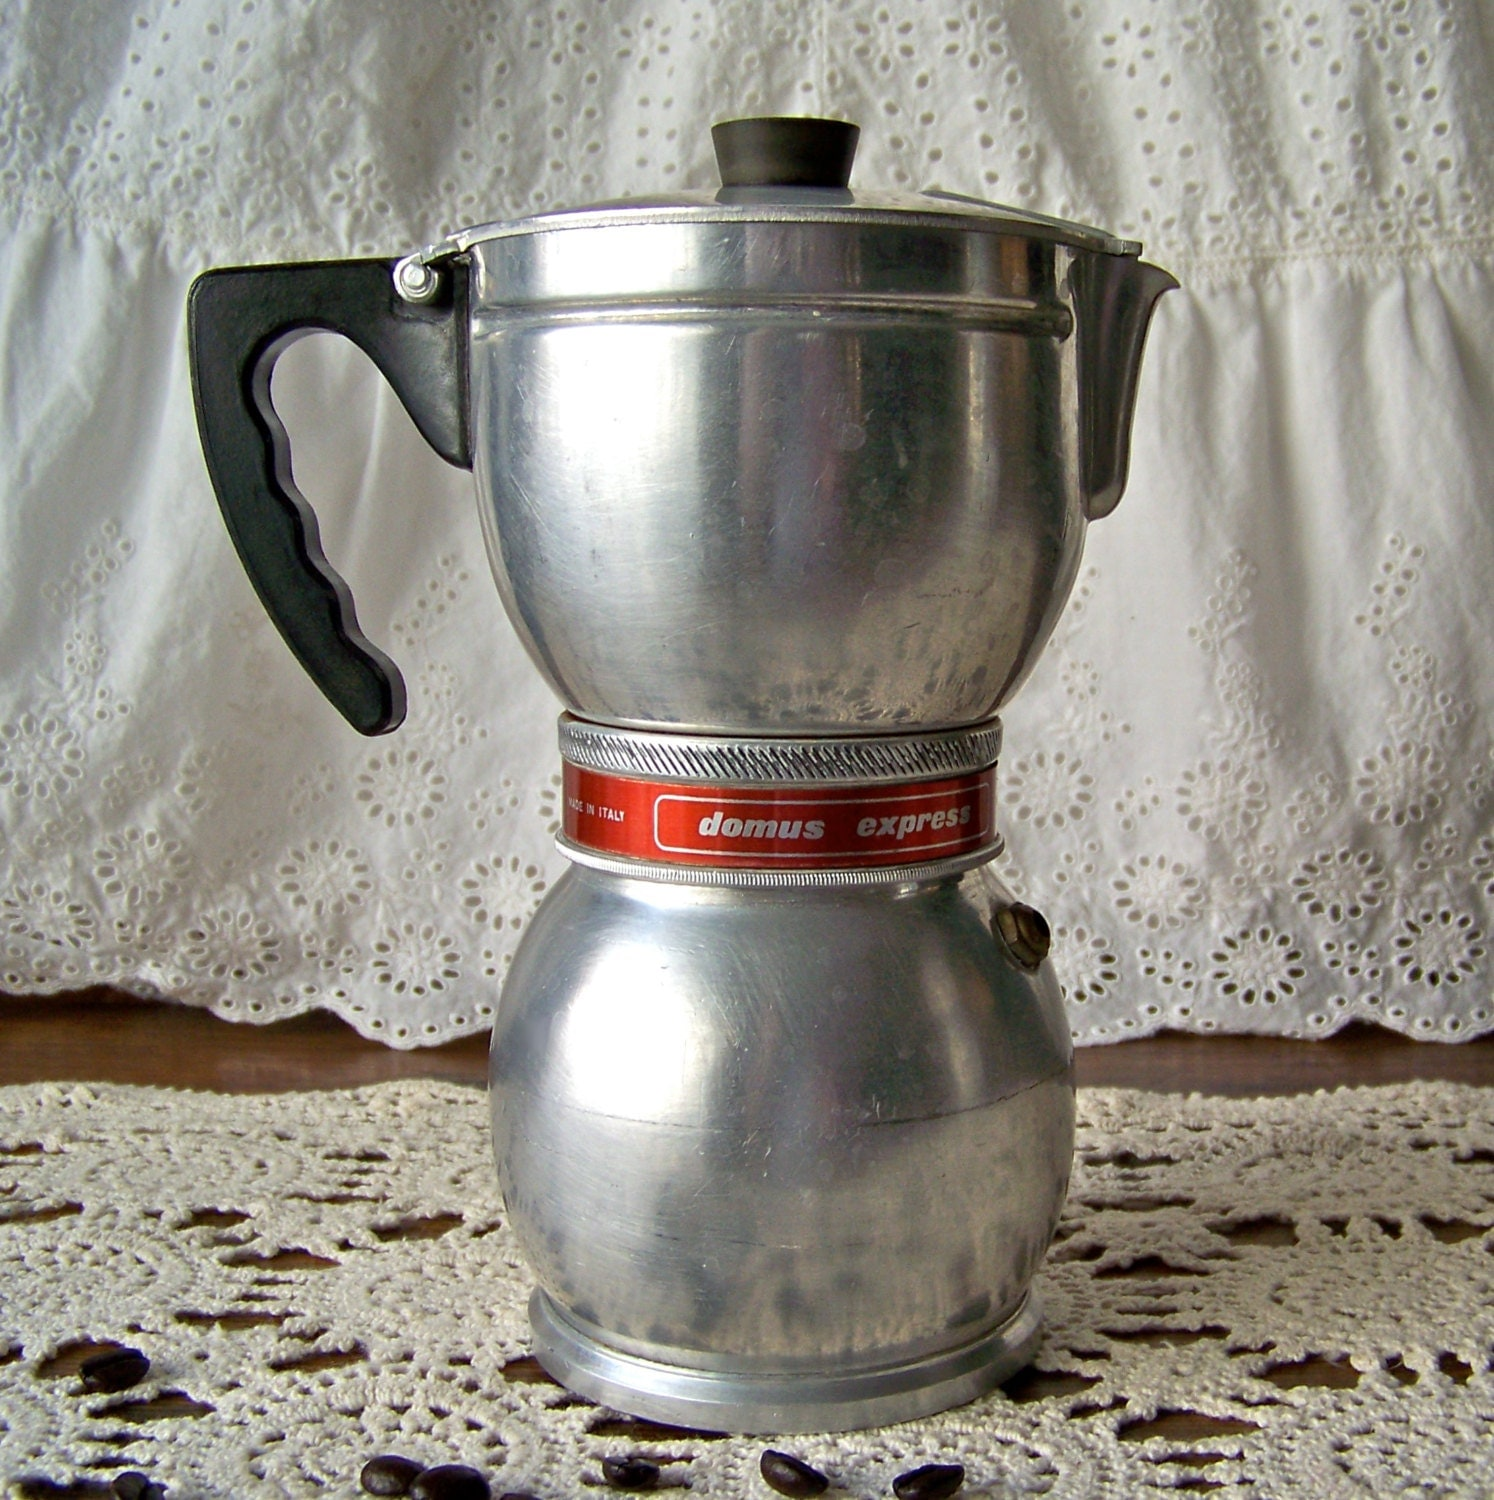 Antique Italian Coffee Maker : Vintage Coffee Maker Domus Express Brevettata Italy